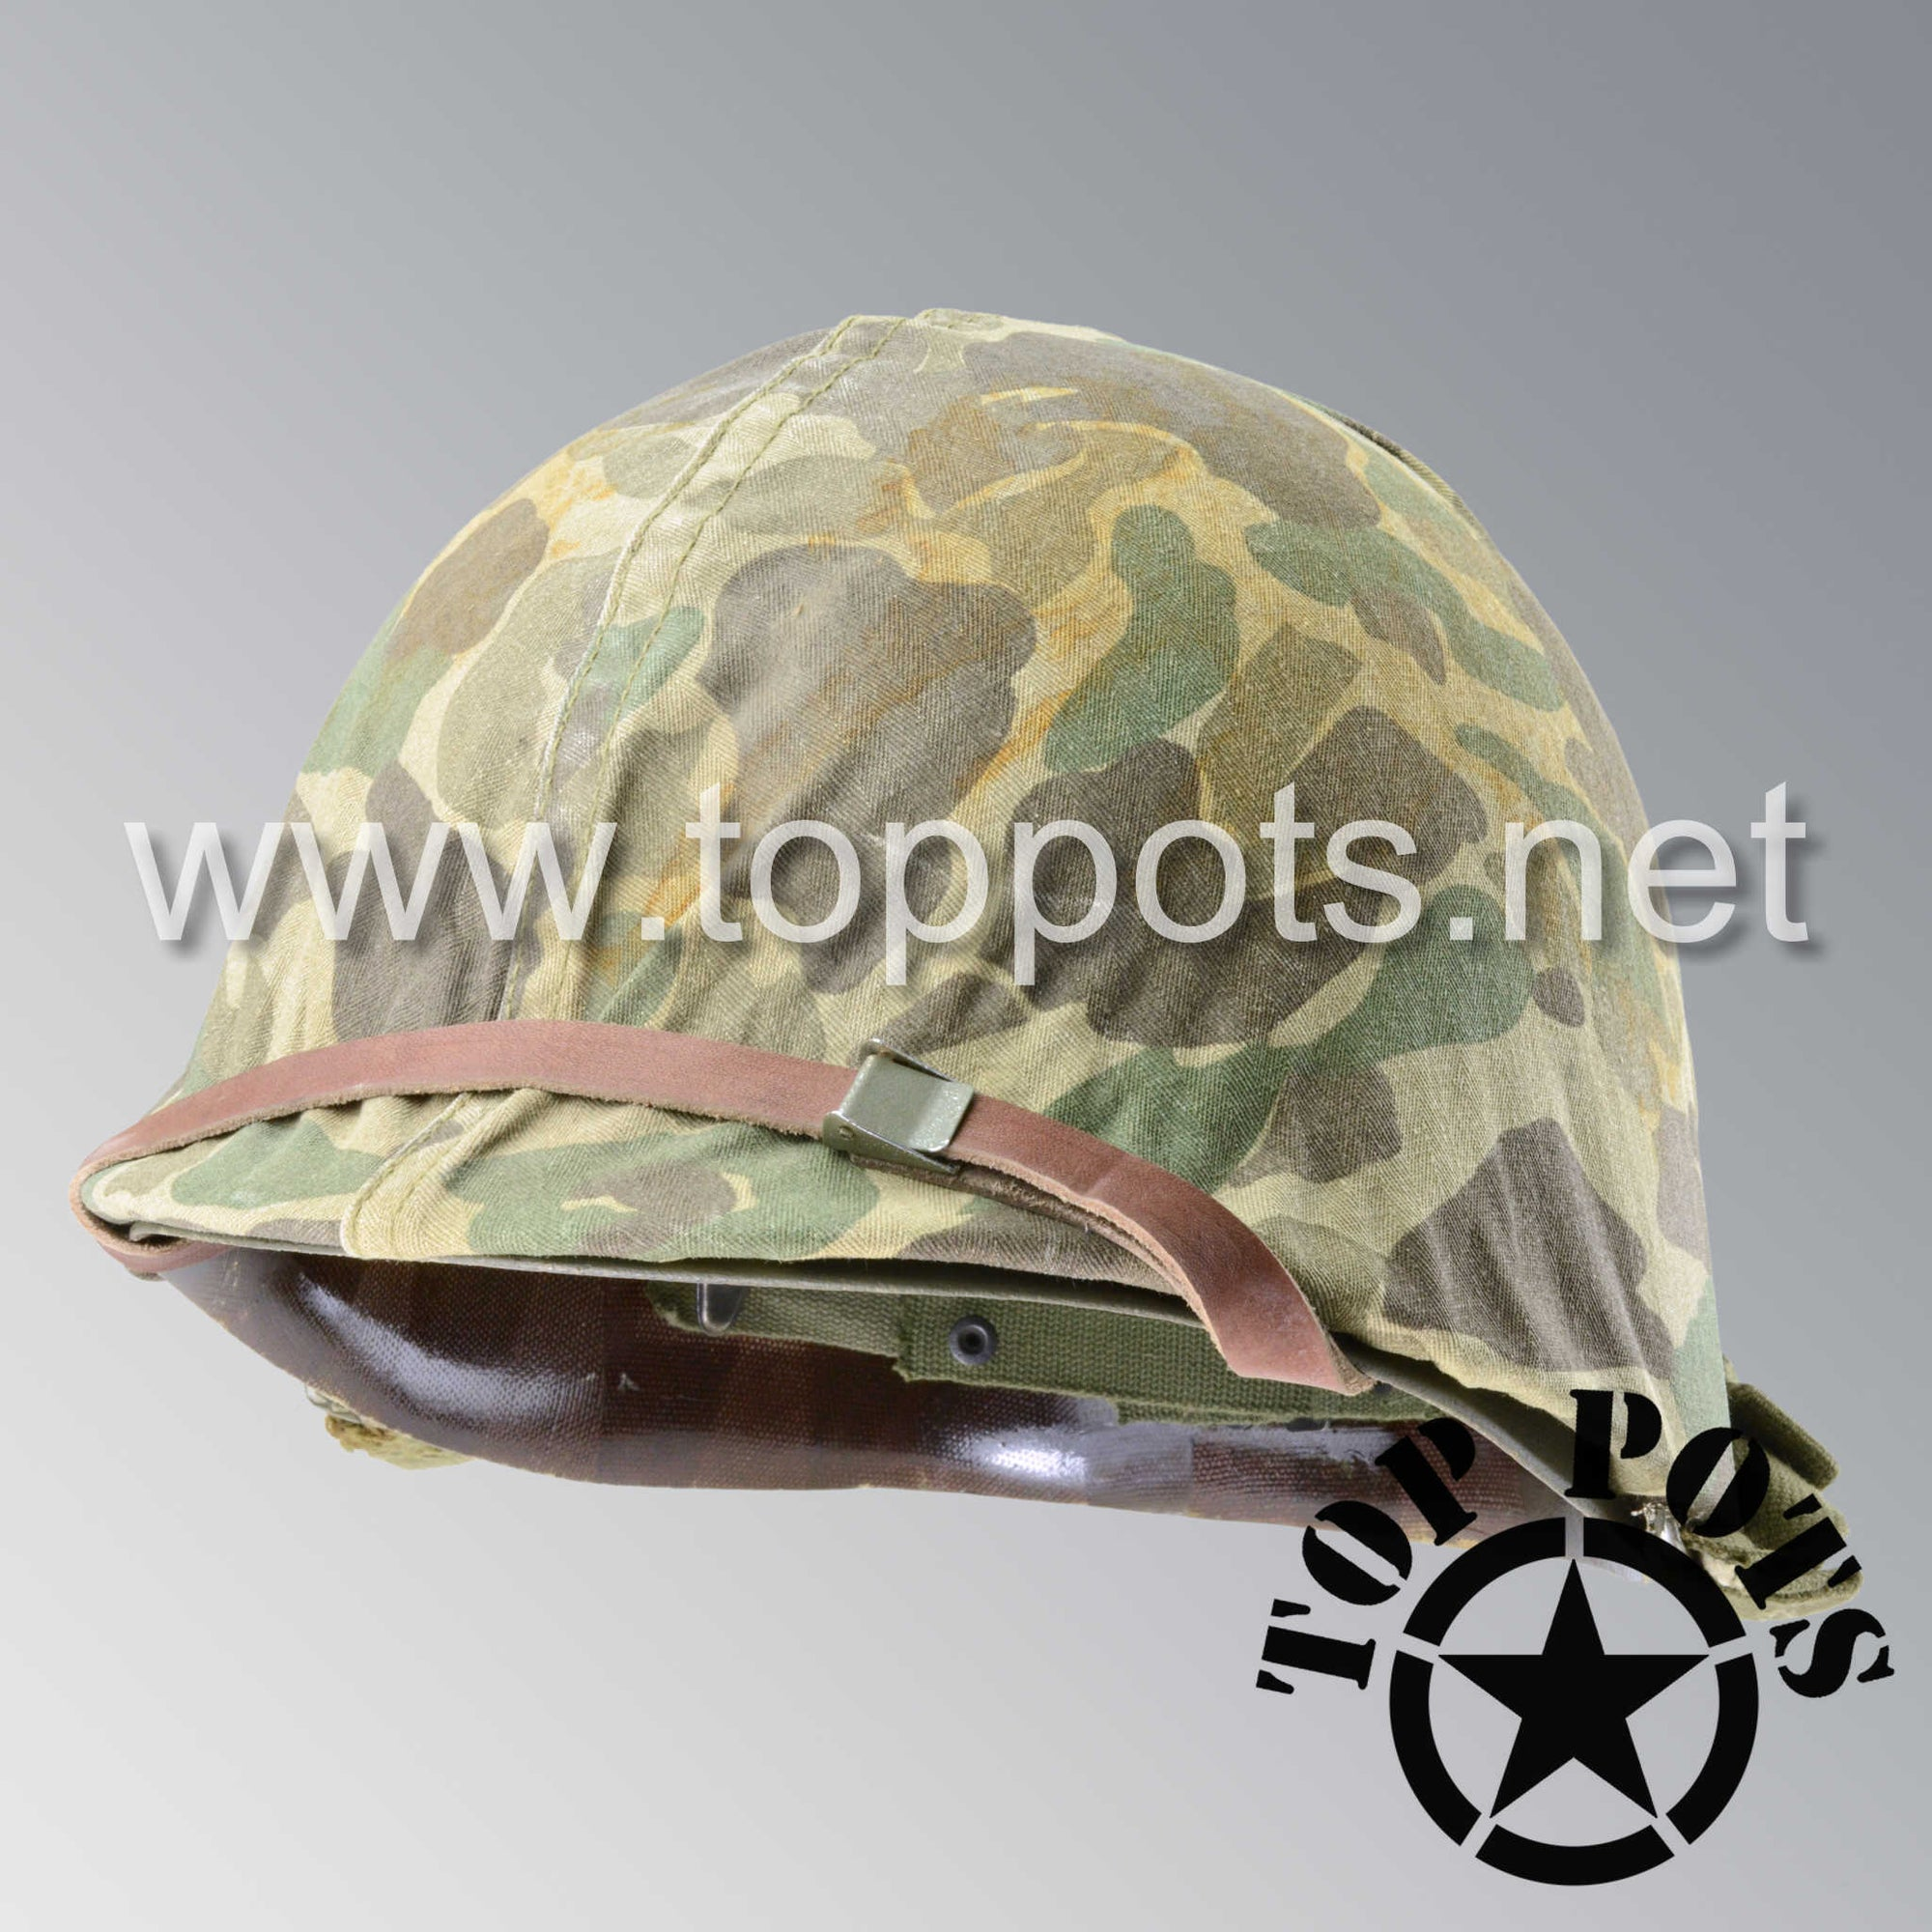 Image 1 of Korean War USMC Restored Original M1 Infantry Helmet Swivel Bale Shell and Liner with Marine Corps Camouflage Cover